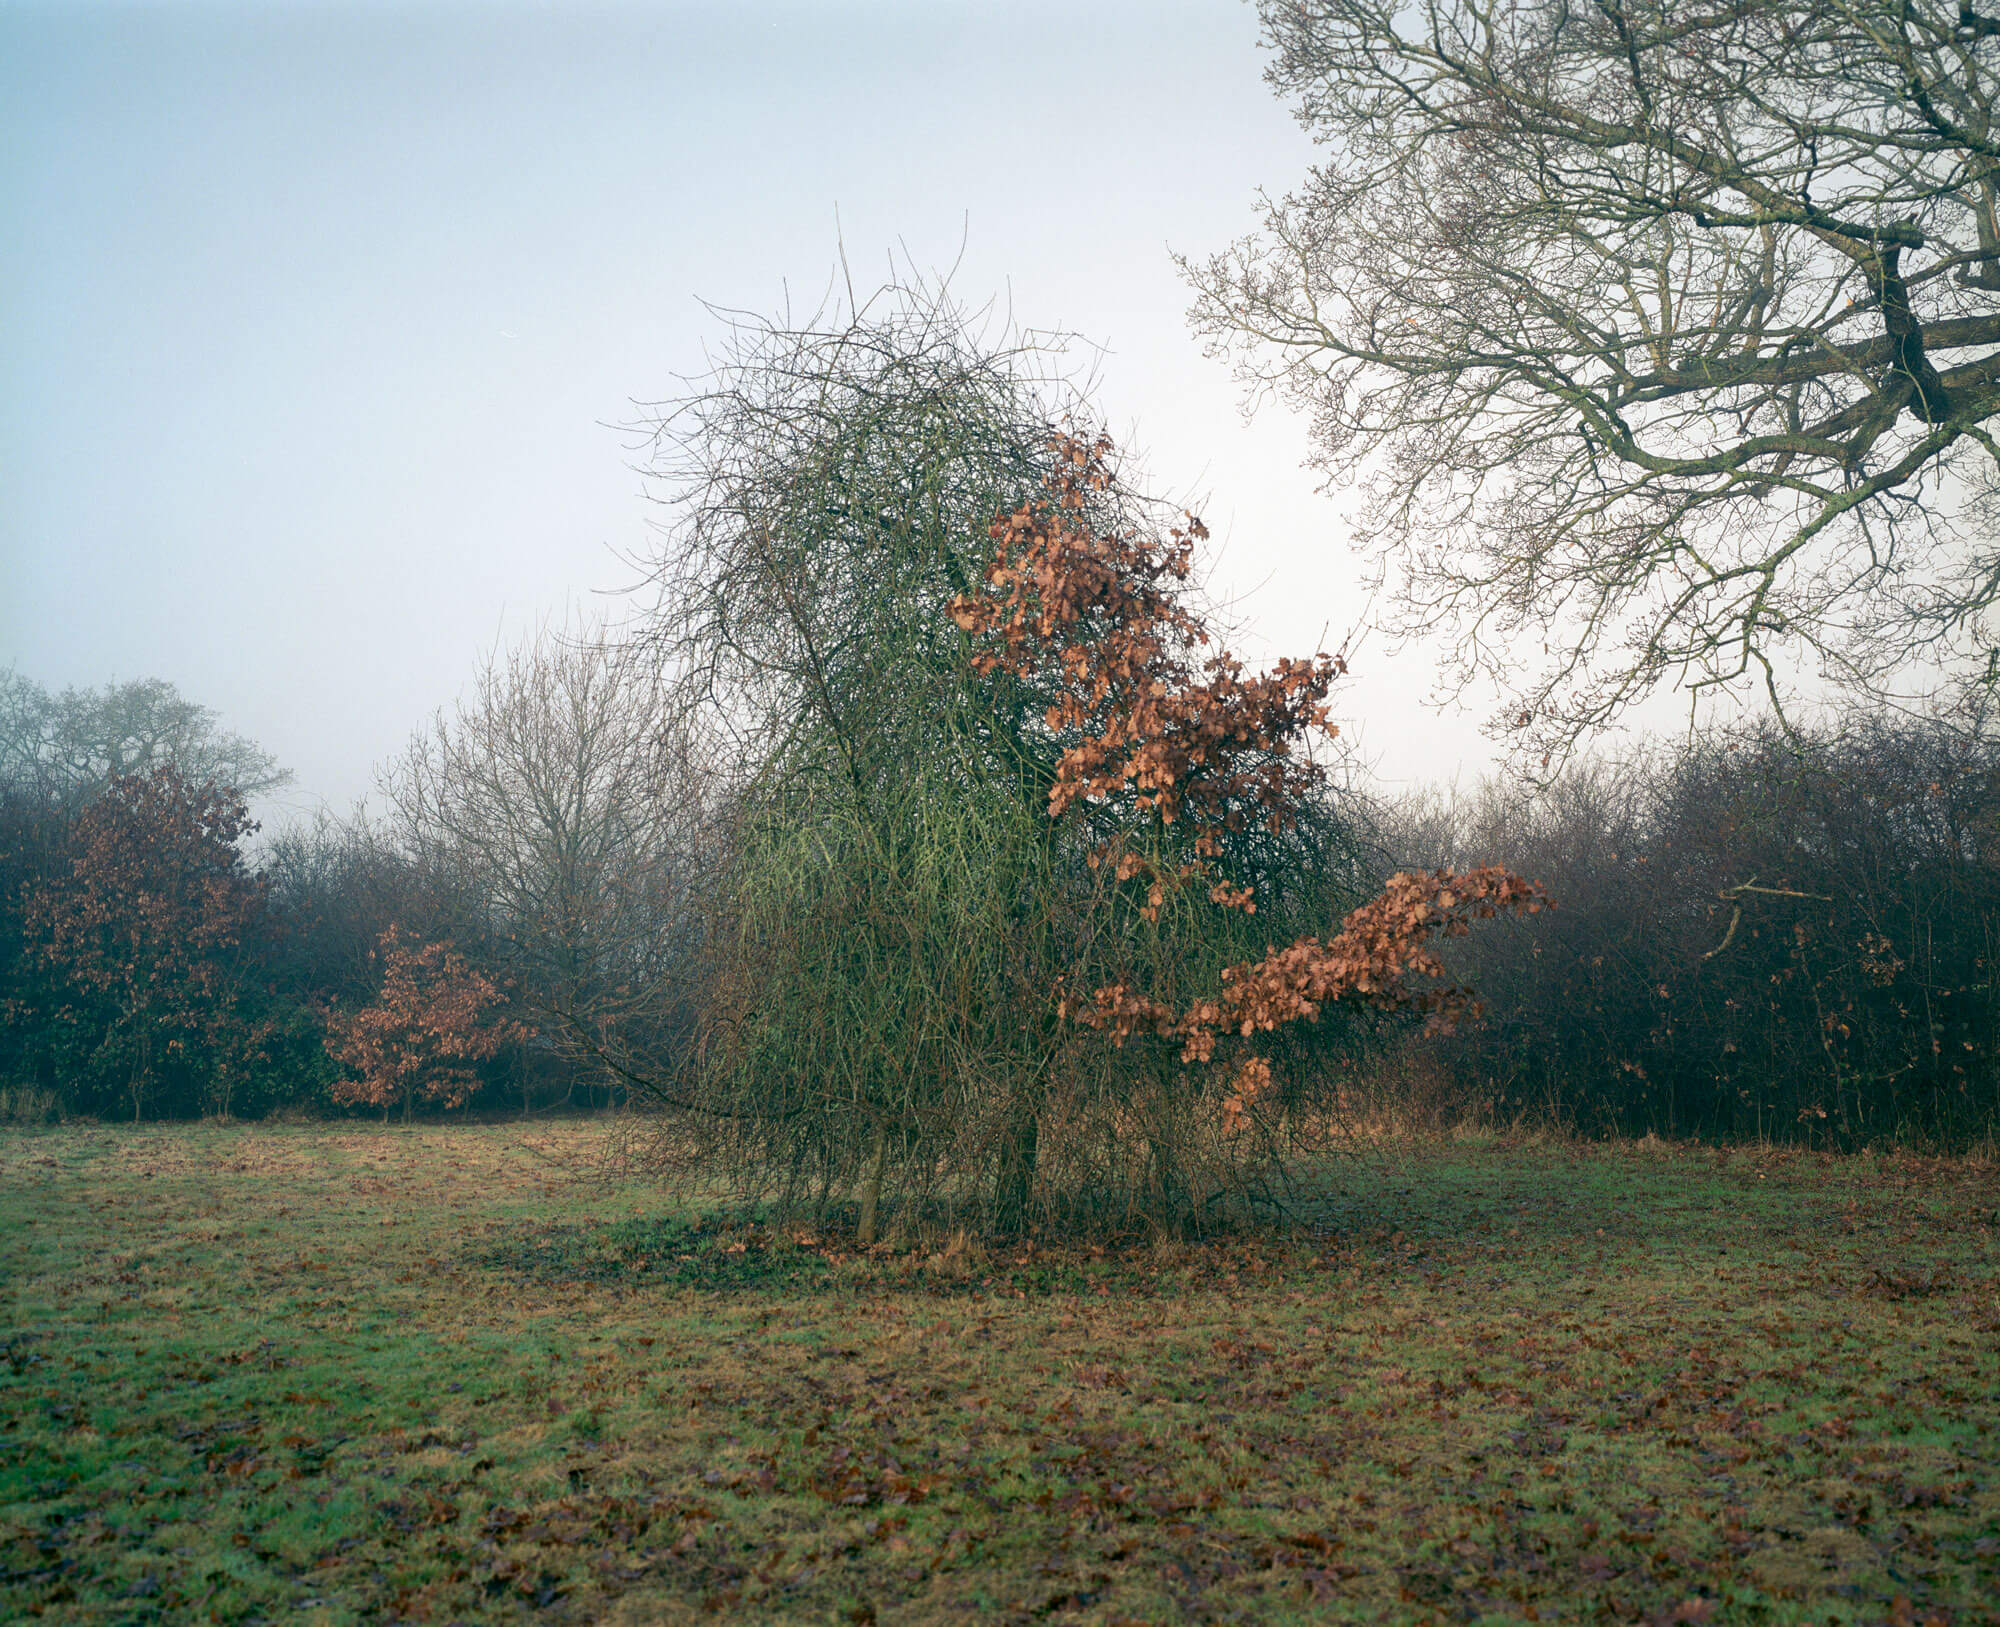 Will McCleland Out of Step Photography documentary photograph story kodak portra 120 The South West Collective photo